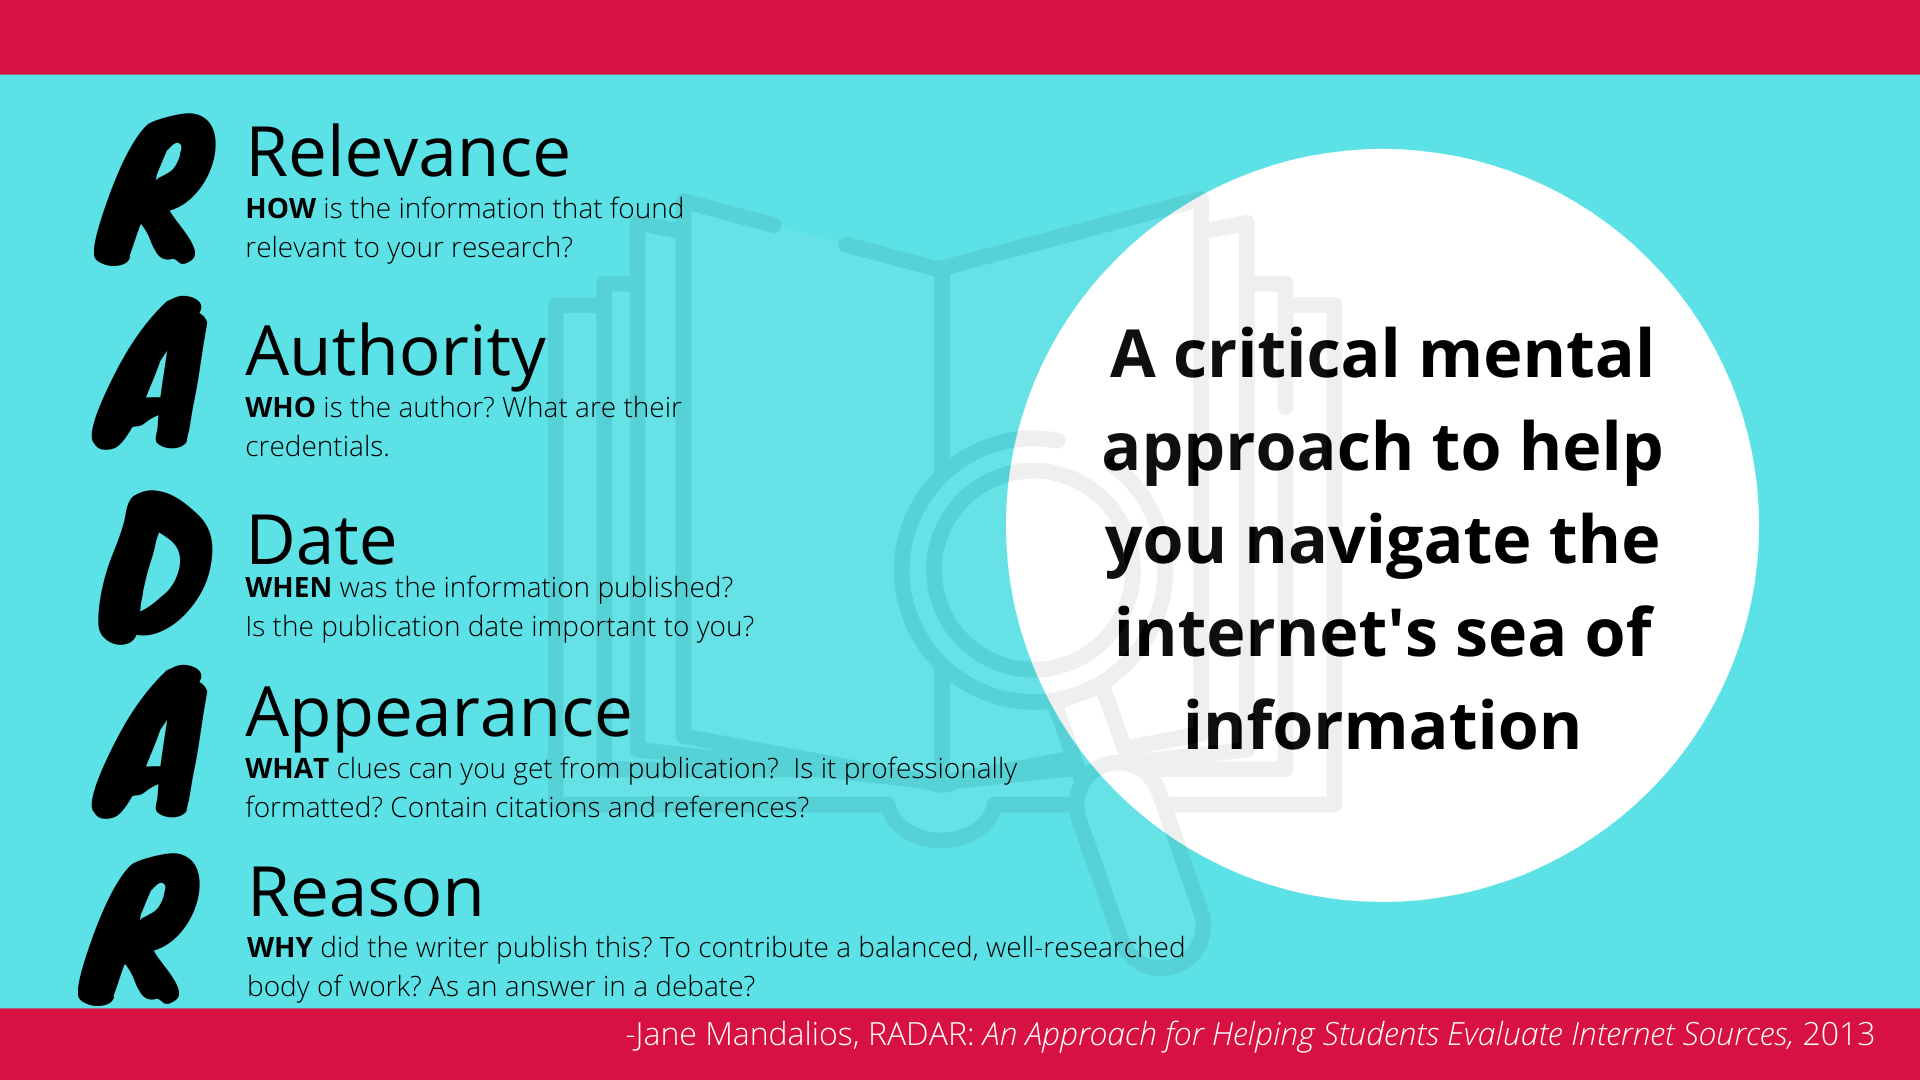 RADAR - Relevance, Authority, Date, Appearance, Reason. A critical mental approach to help you navigate the internet's sea of information